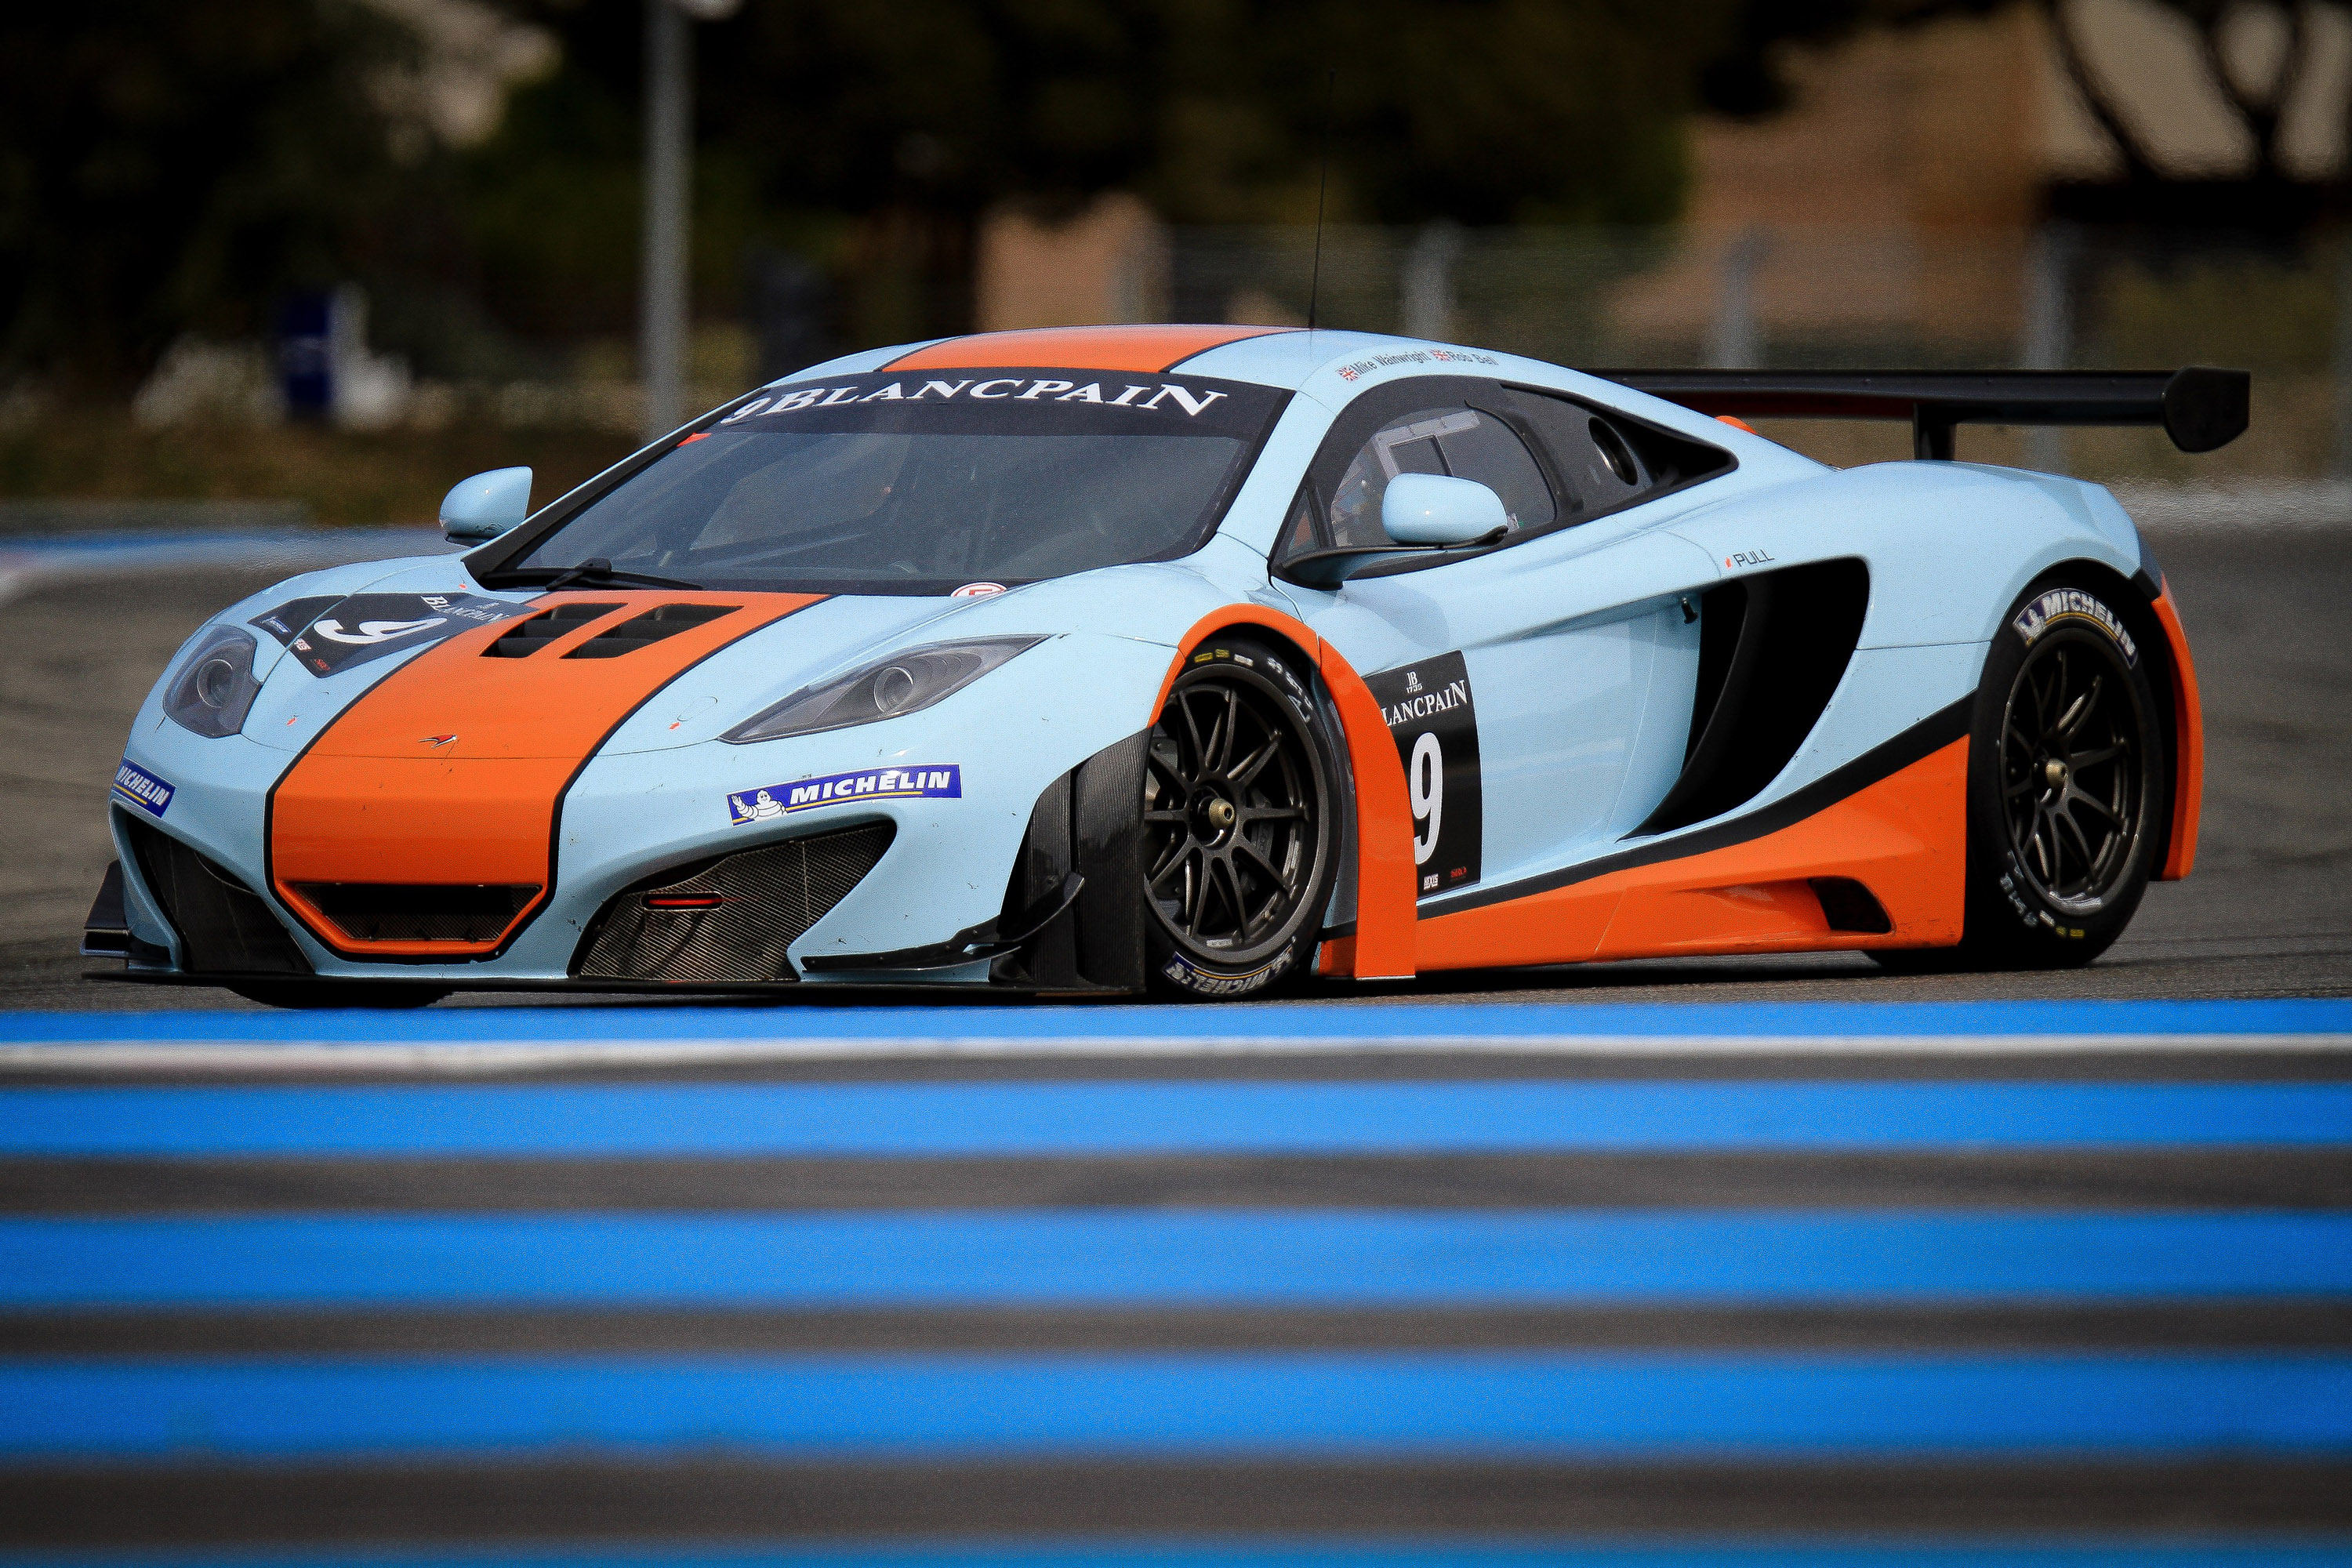 McLaren MP4-12C GT3 at the race track - Picture 67386